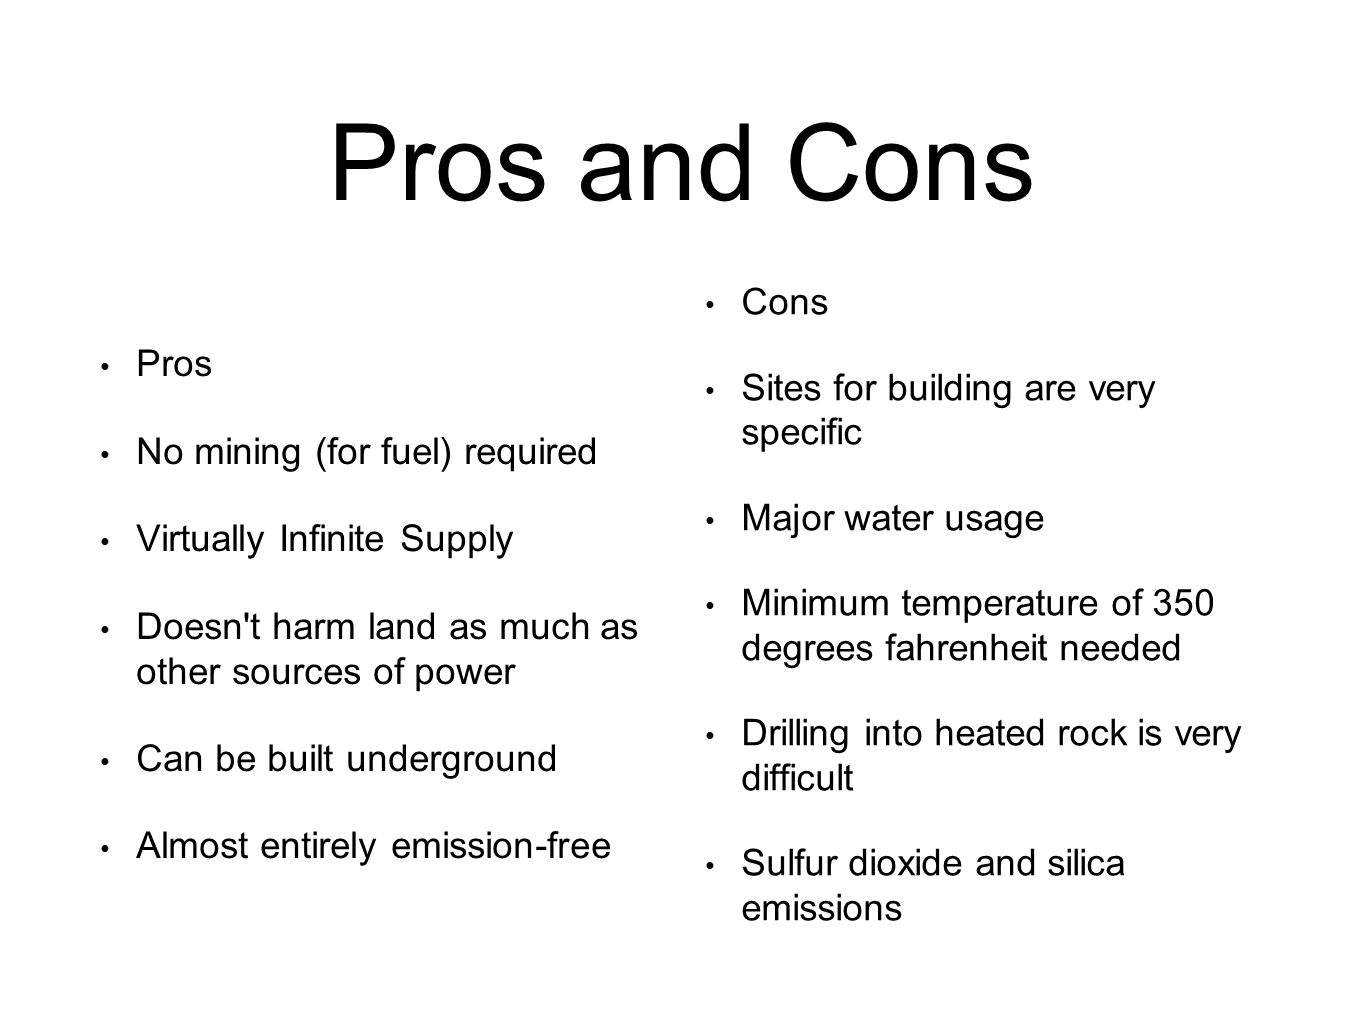 Geothermal energy: pros and cons. Geothermal energy sources 98